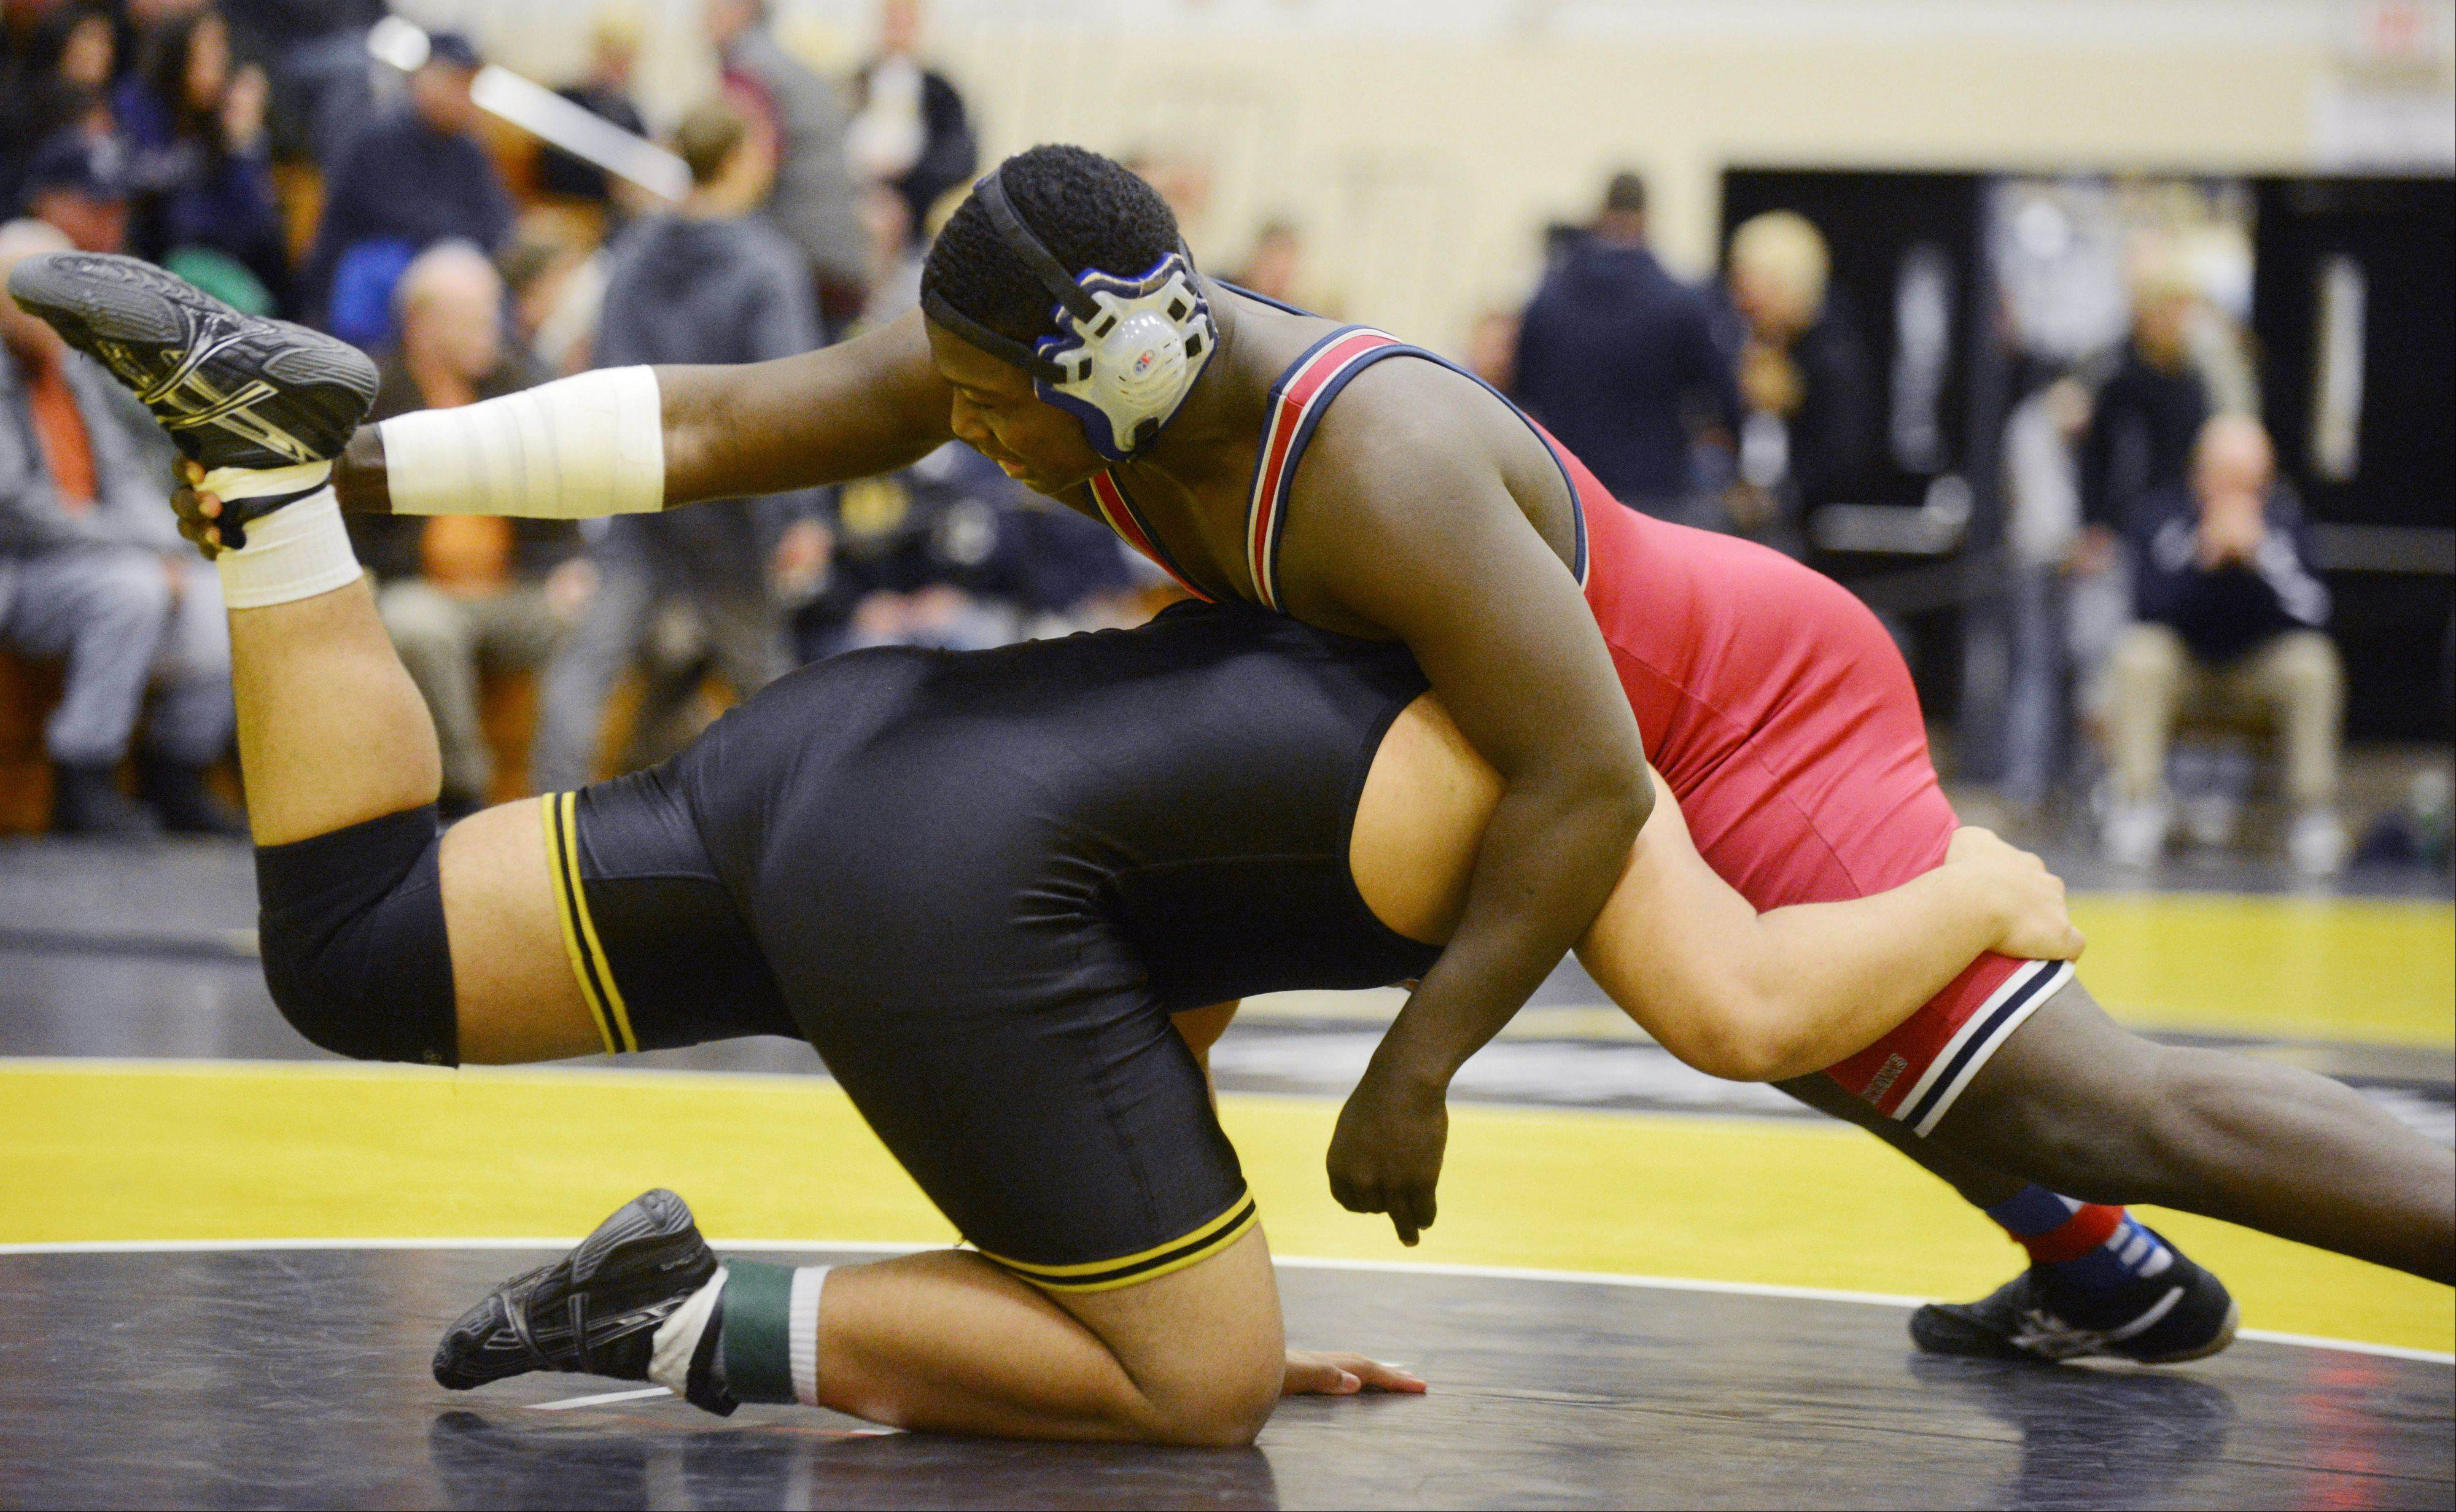 Paul Pennington of Glenbard North and Marquetas Ward take part in a 220 pound match during the DuPage Valley Conference wrestling meet Saturday in Carol Stream.